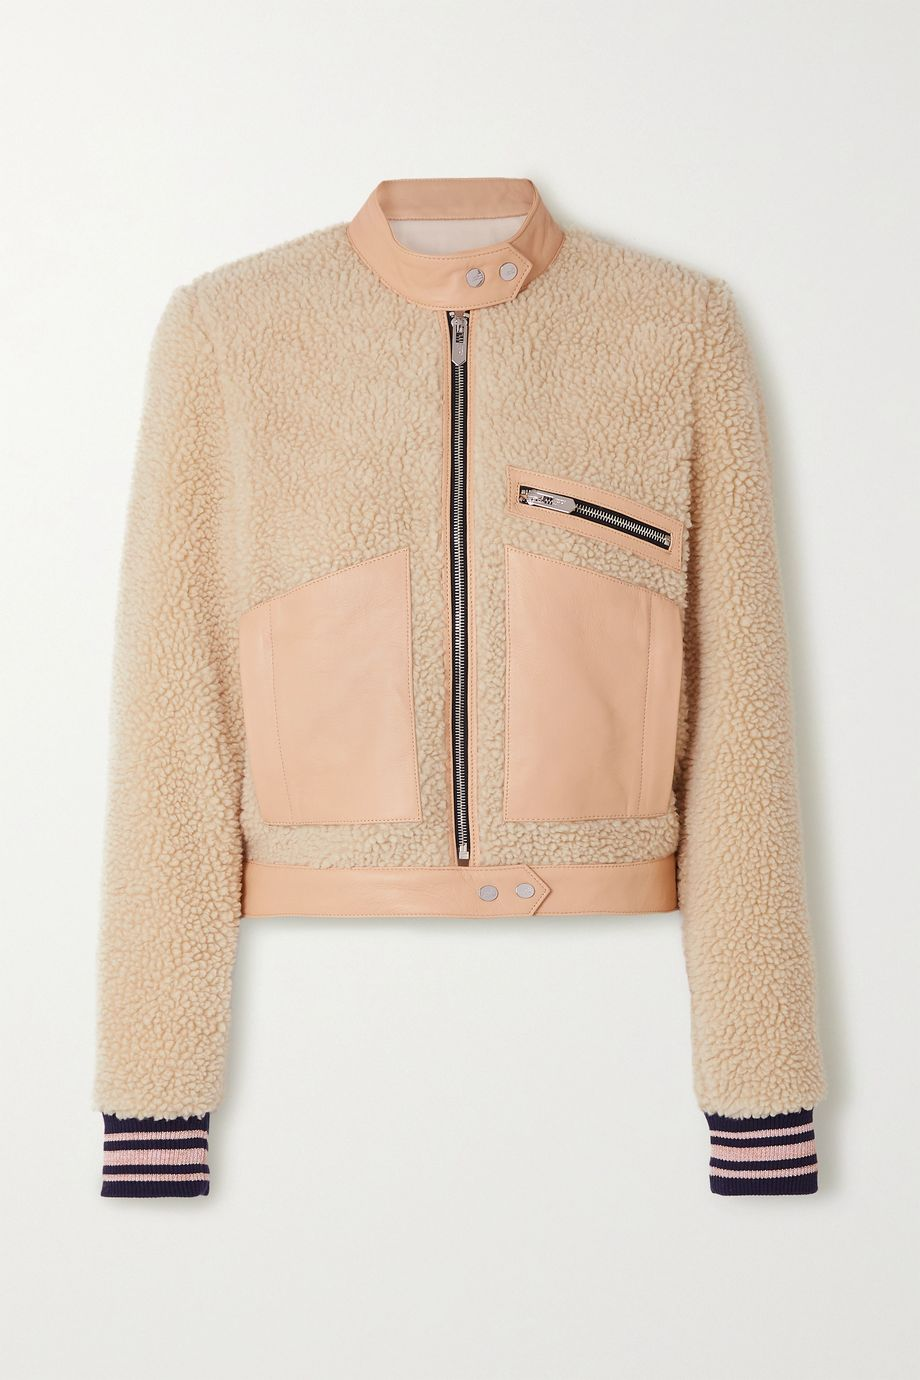 The Mighty Company The Rugby leather-trimmed faux shearling biker jacket